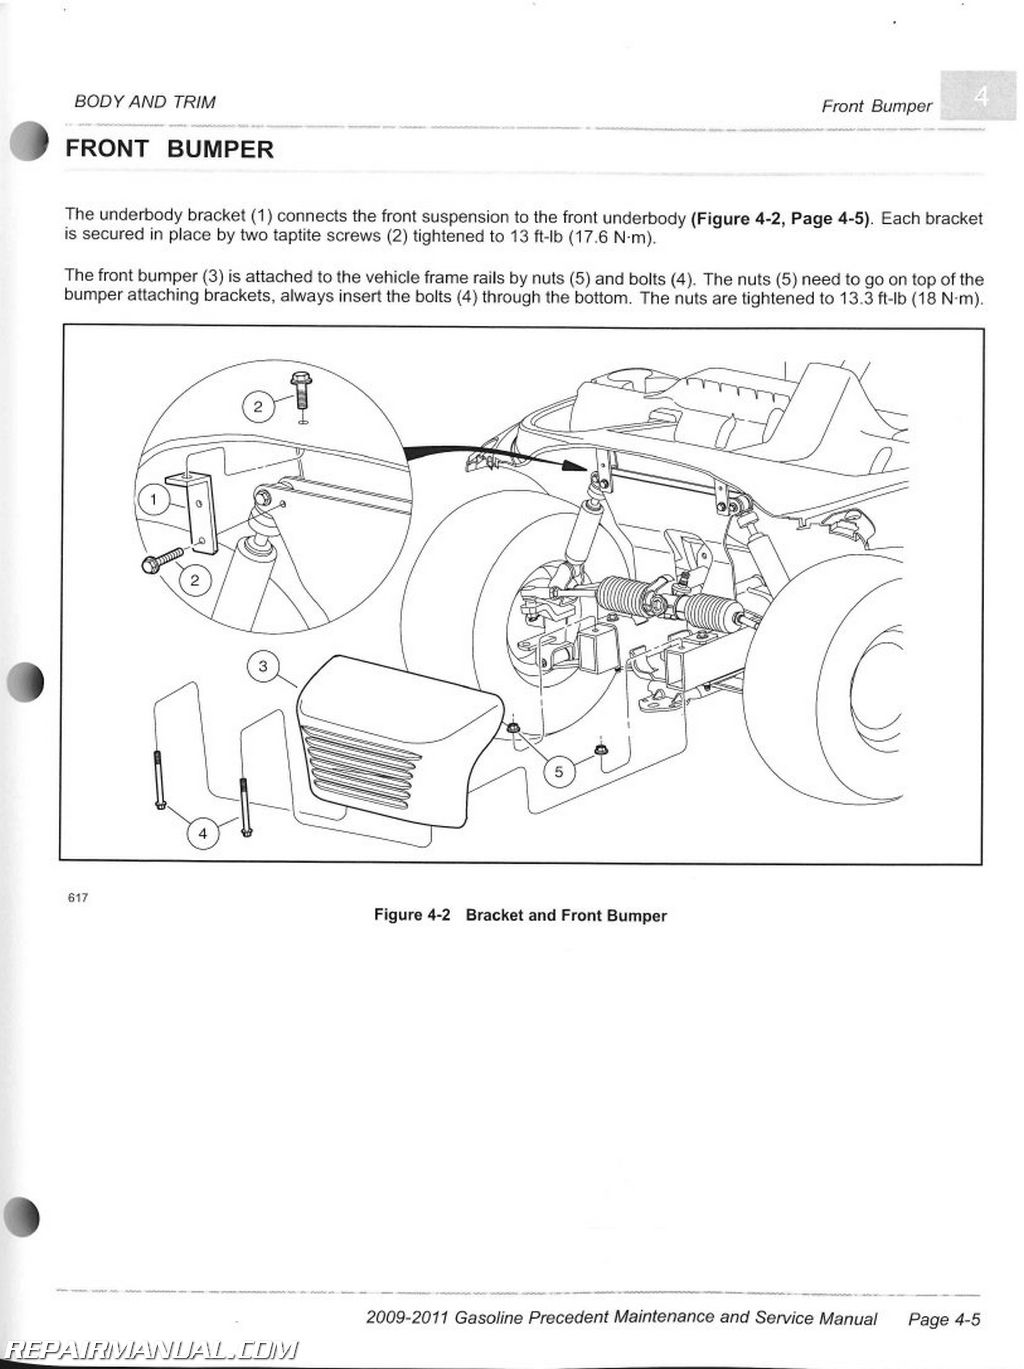 2009 Club Car Wiring Diagram Another Blog About Lincoln Town Fuse Box 2011 Gasoline Precedent Maintenance And Ds